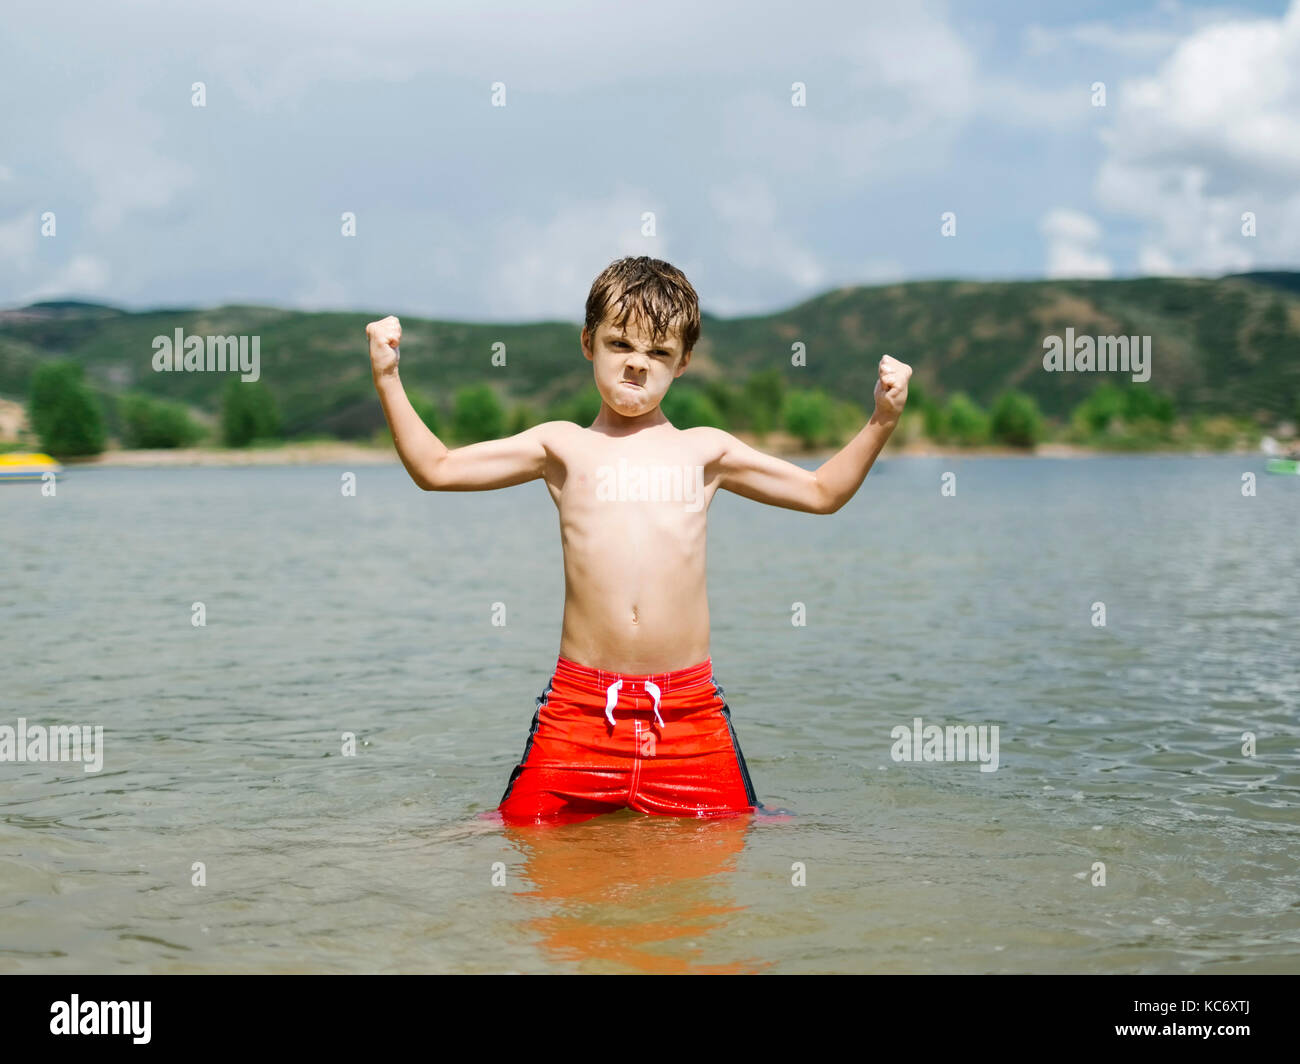 Boy Flexing Muscles Stock Photos Amp Boy Flexing Muscles